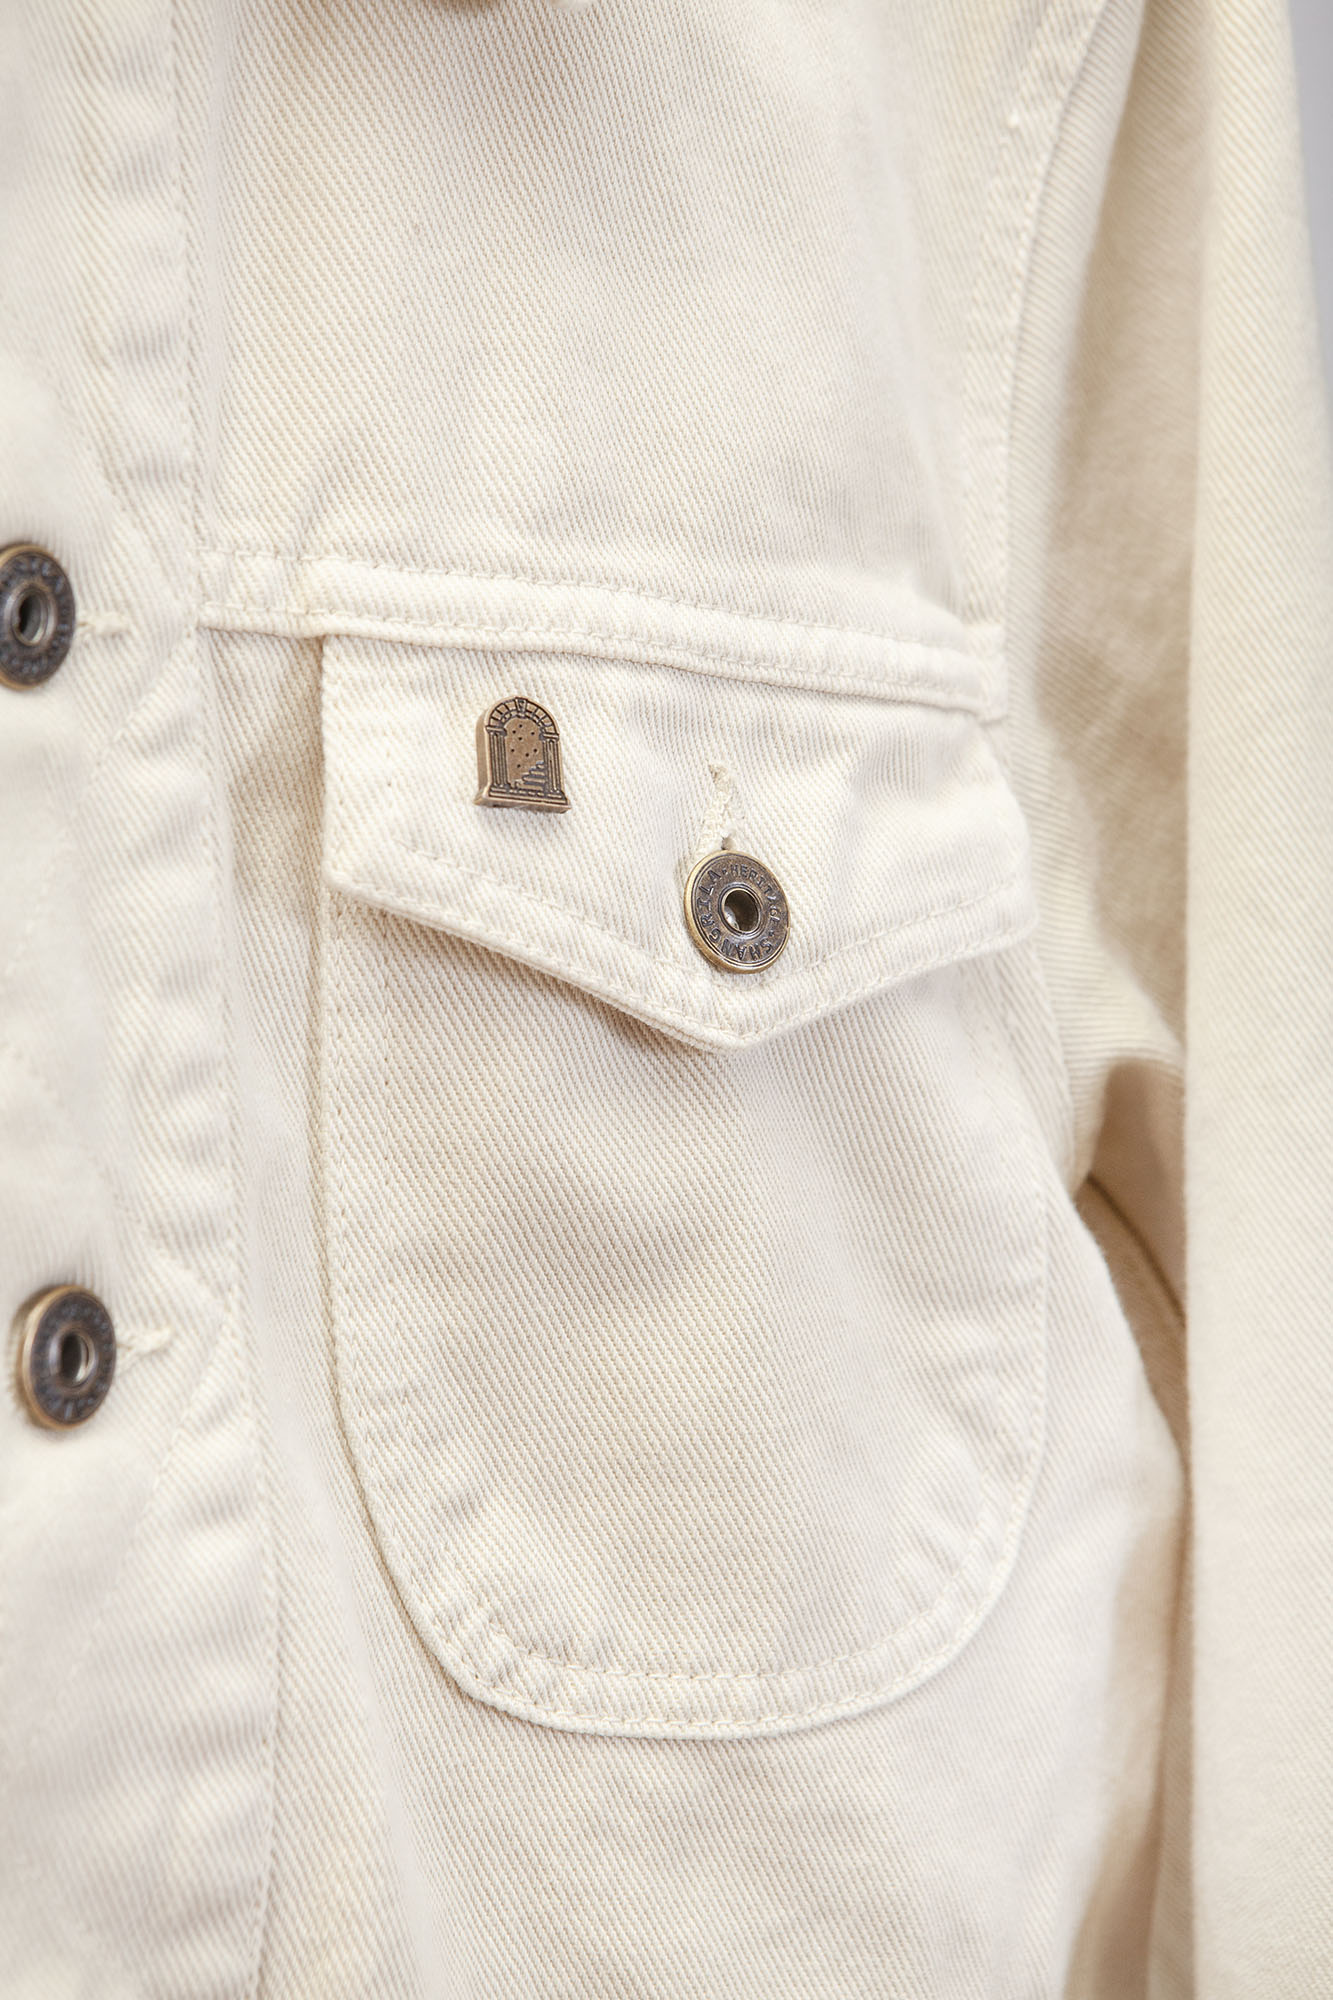 shangri-la-heritage-single-rider-ivory-canvas-jacket-still-life-detail